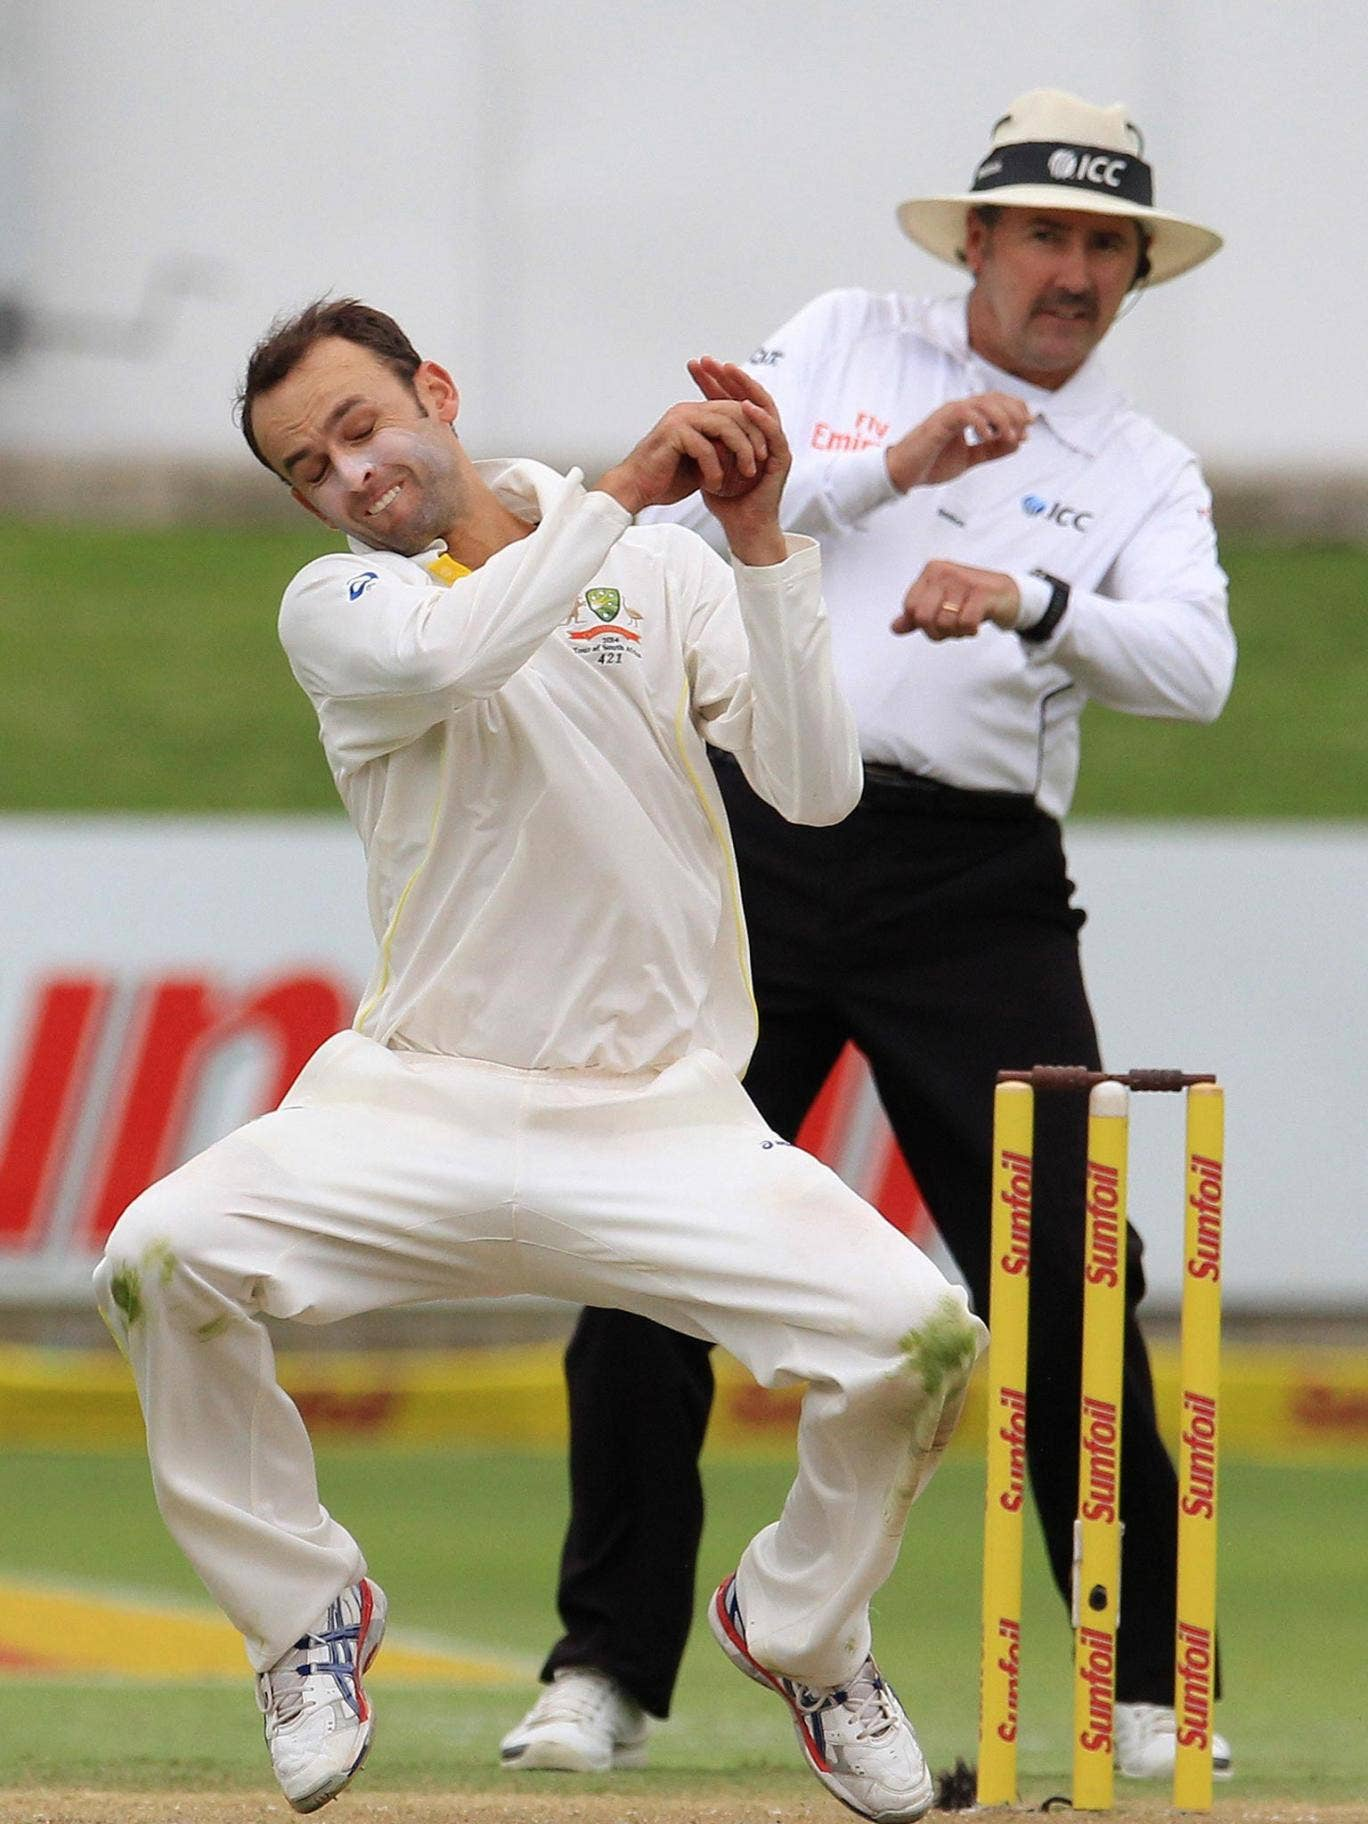 Australia spinner Nathan Lyon fields the ball from his own bowling as umpire Richard Illingworth prepares for evasive action in the background